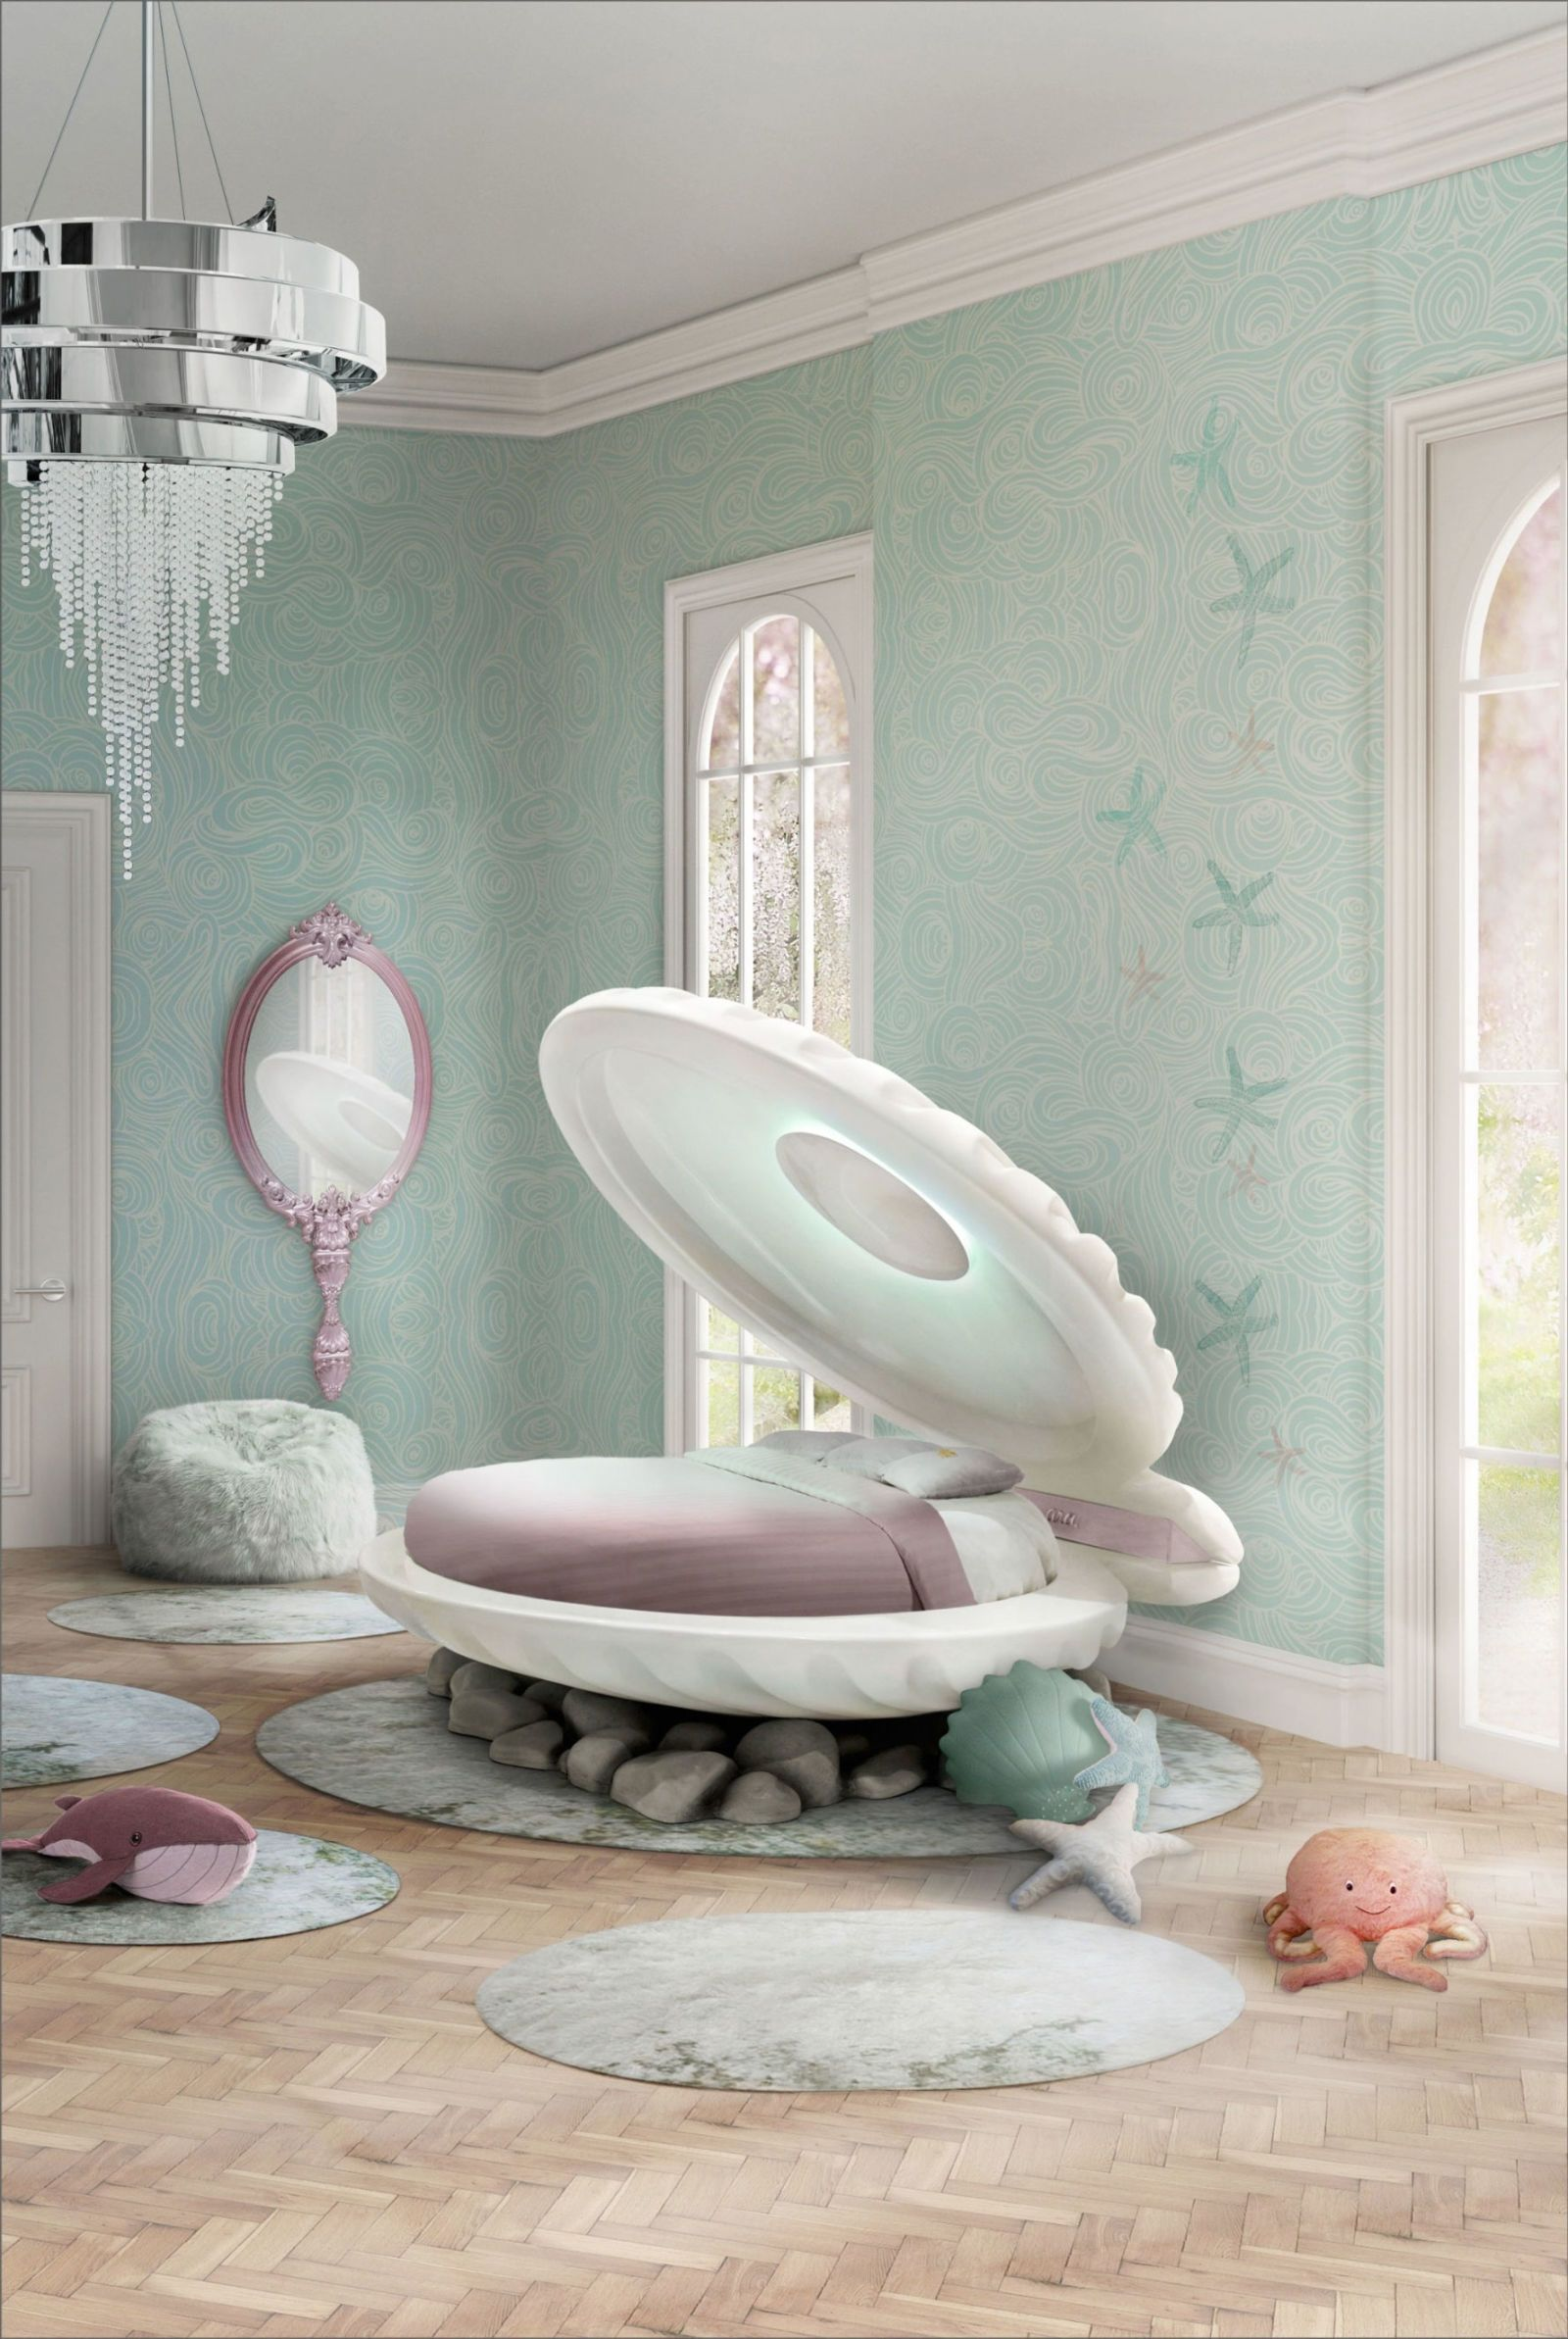 """a """"the little mermaid"""" clamshell bed now exists in the world"""